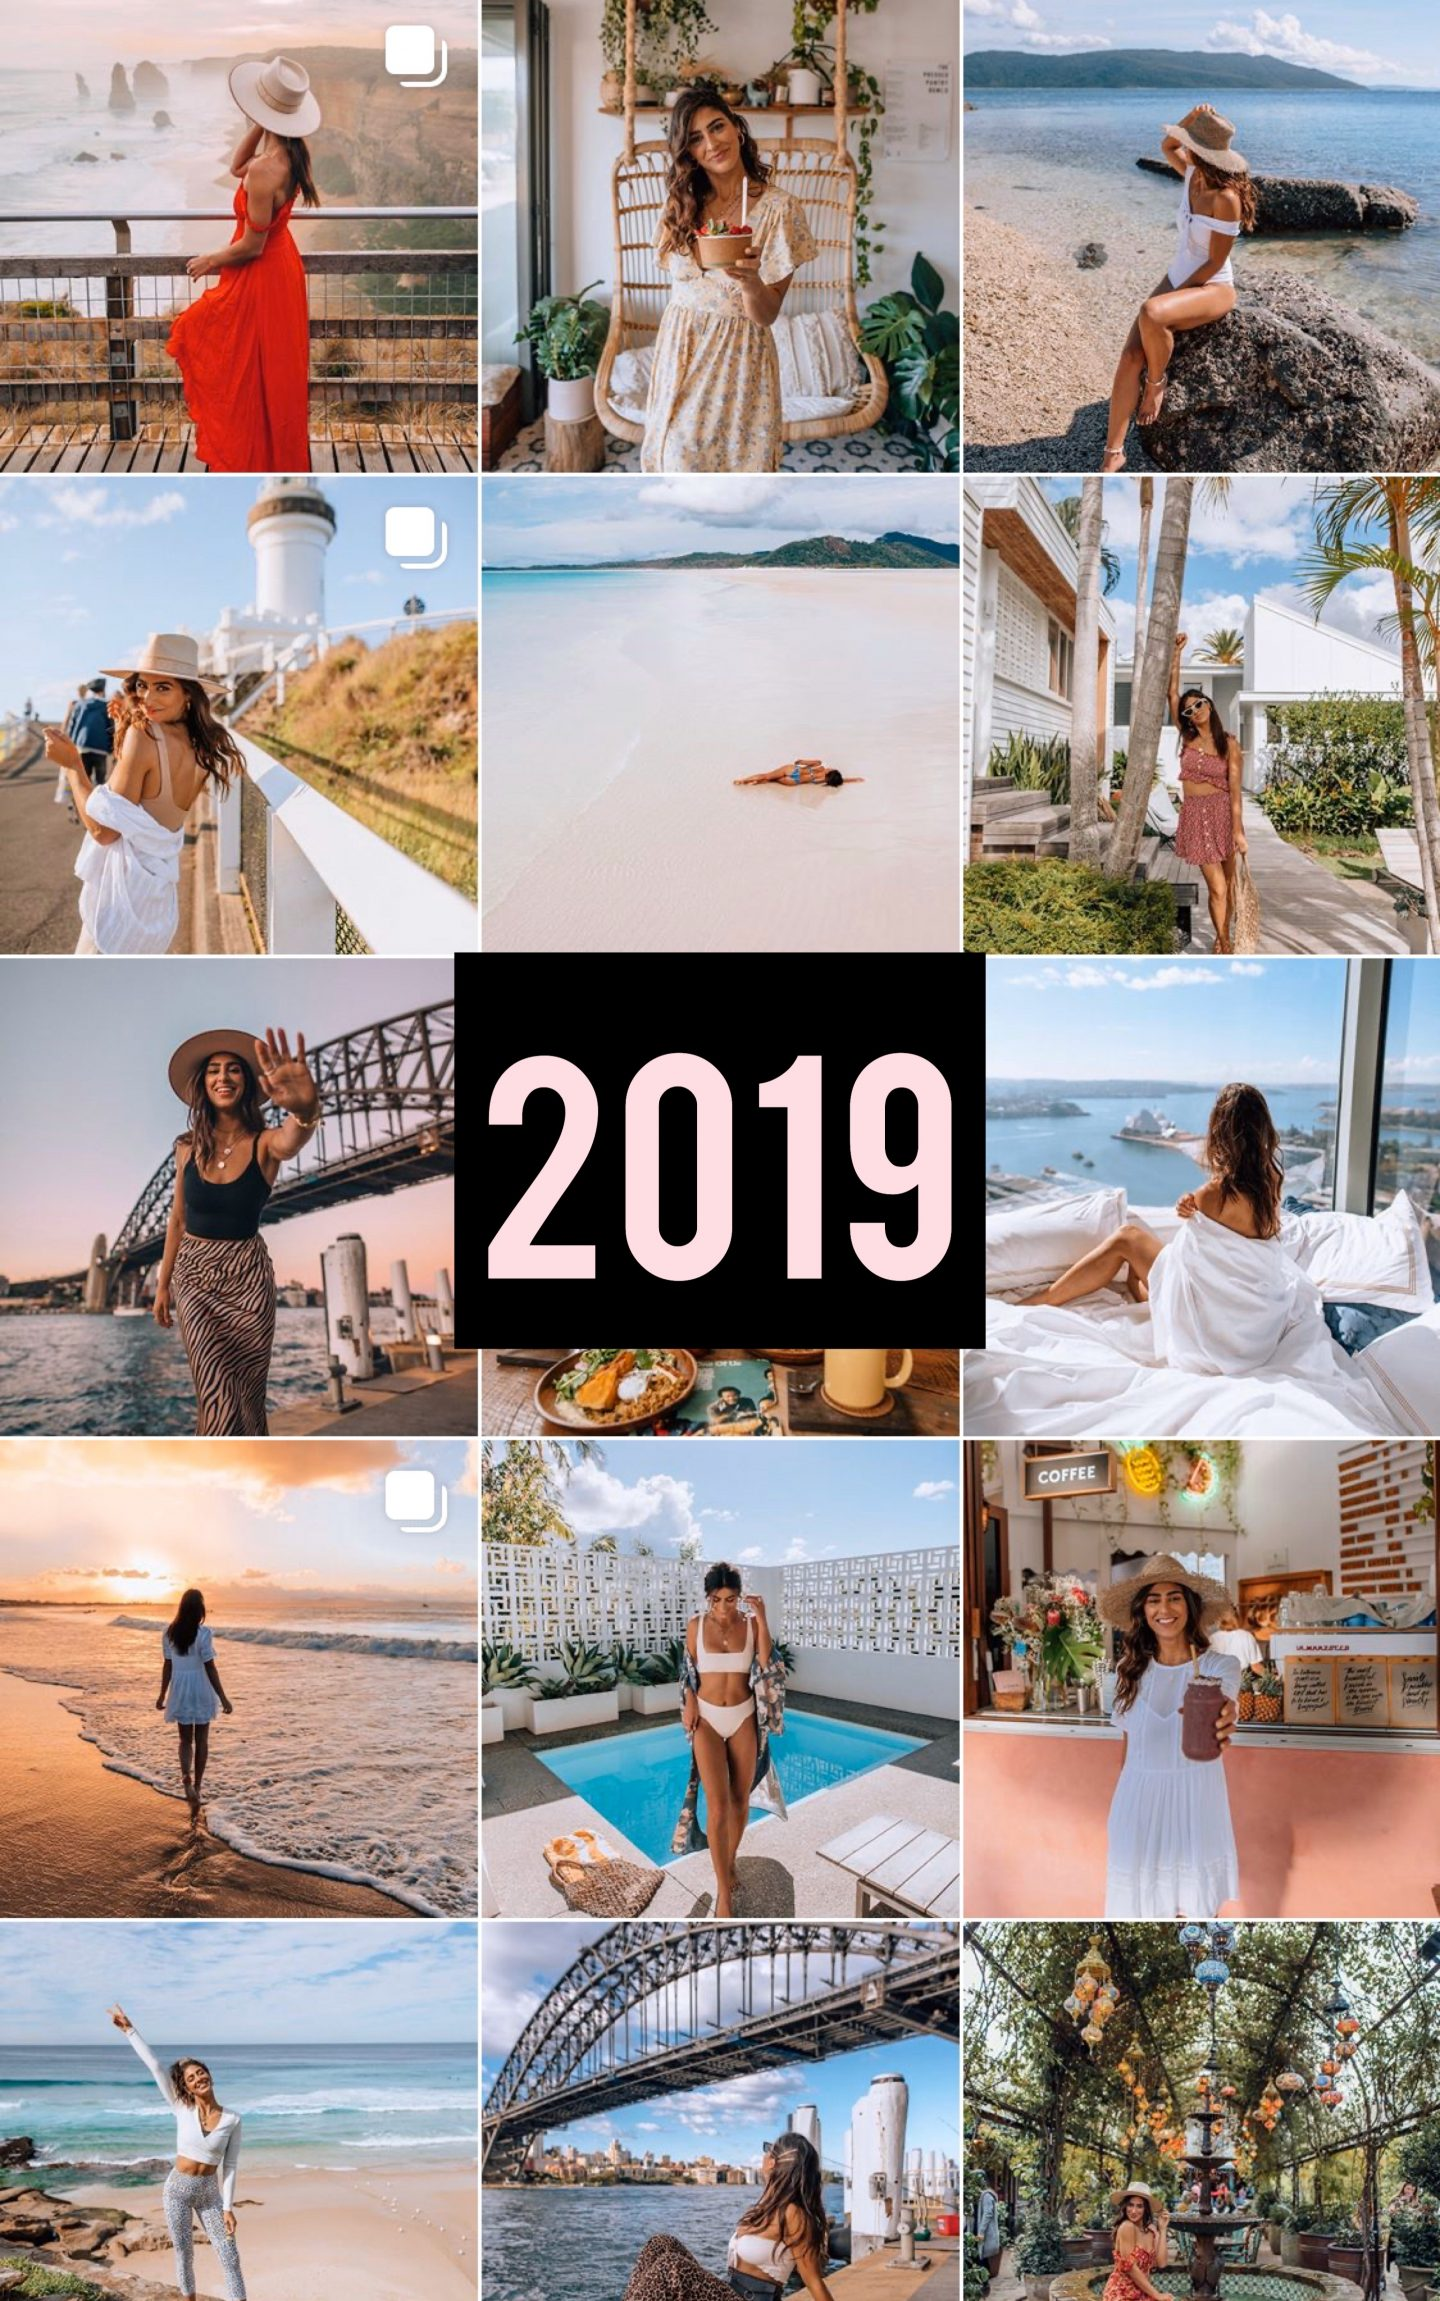 Lisa Homsy Instagram feed 2019